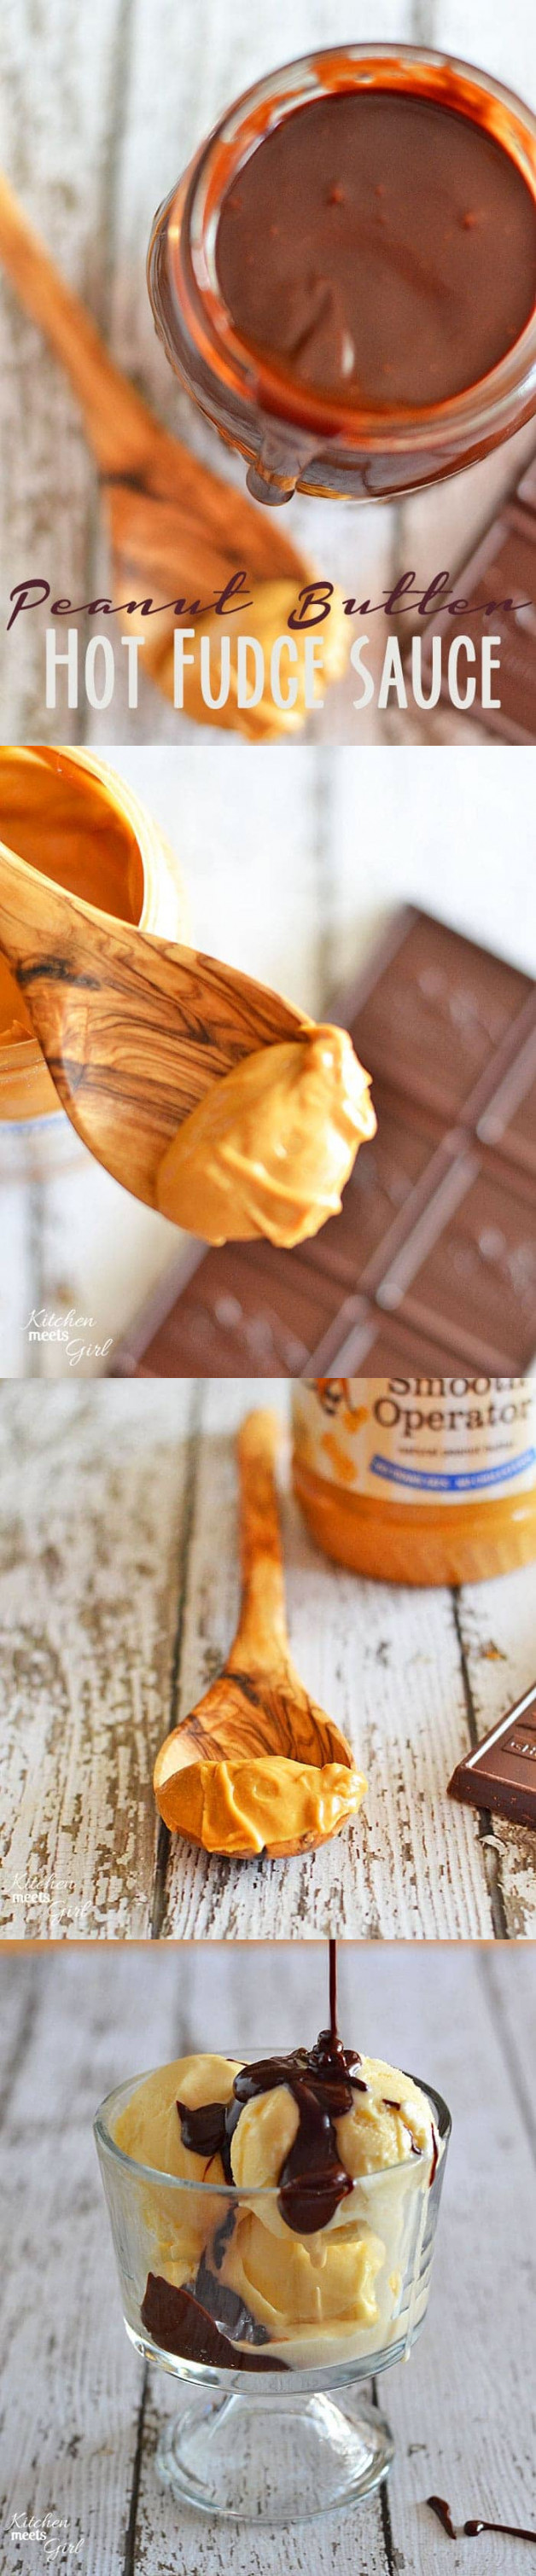 Peanut Butter Hot Fudge Sauce | Kitchen Meets Girl